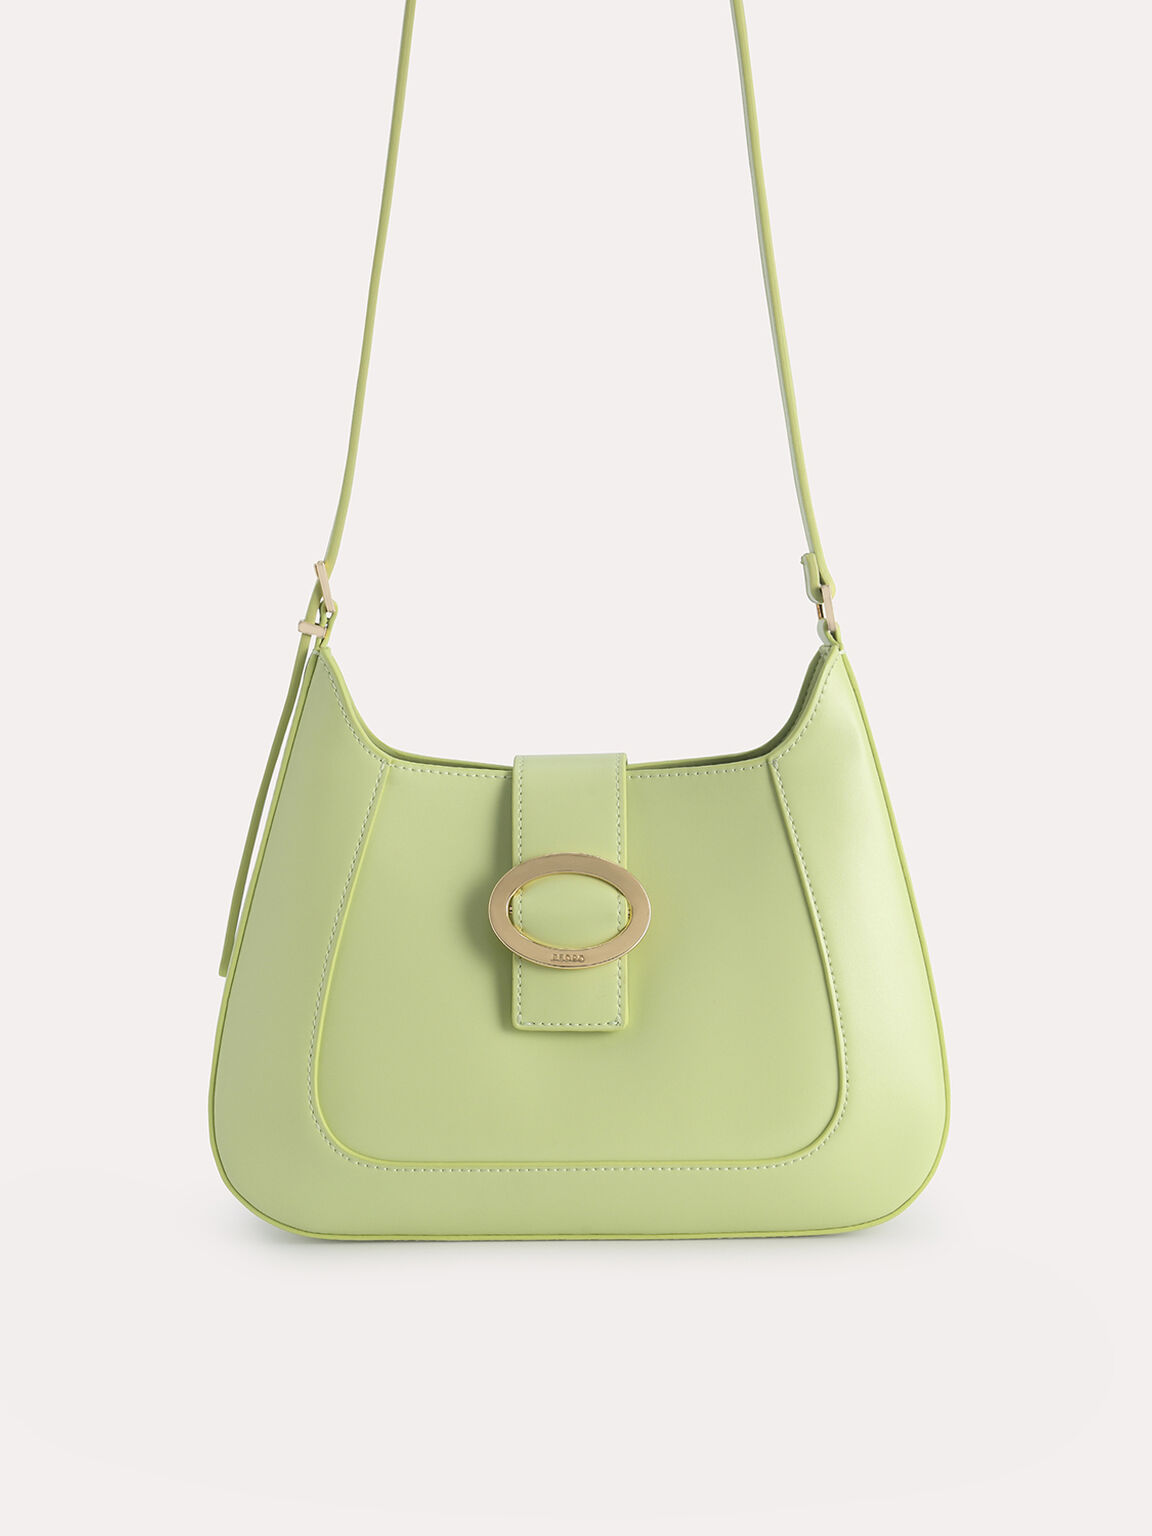 Top Handle Bag with Oval Buckle, Light Green, hi-res